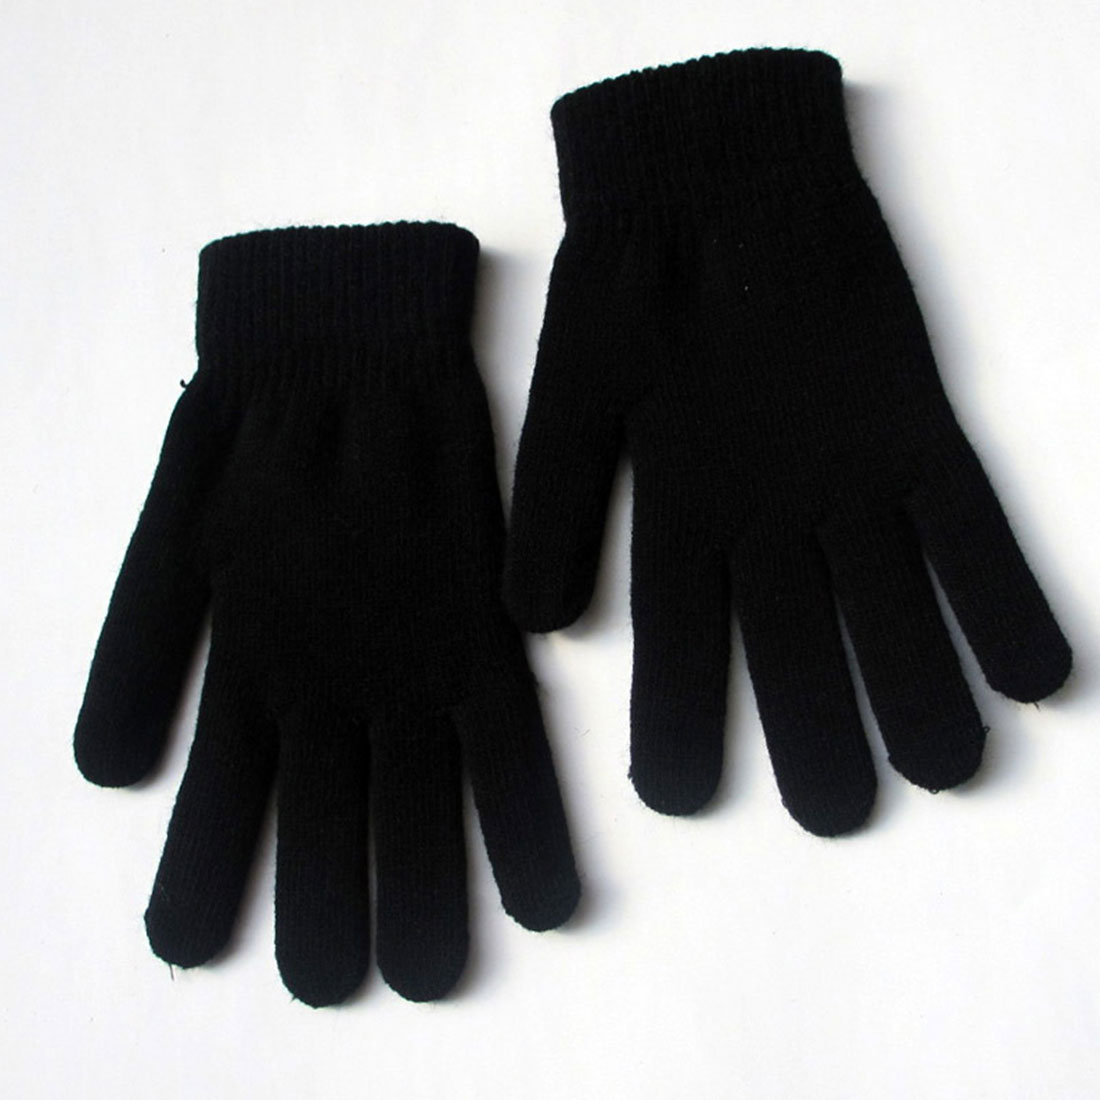 Trendy Leisure Snow Thickening  Velvet High Stretch Knit Five Finger Magic Gloves Hugh Men And Women Warm Winter Gloves Warm